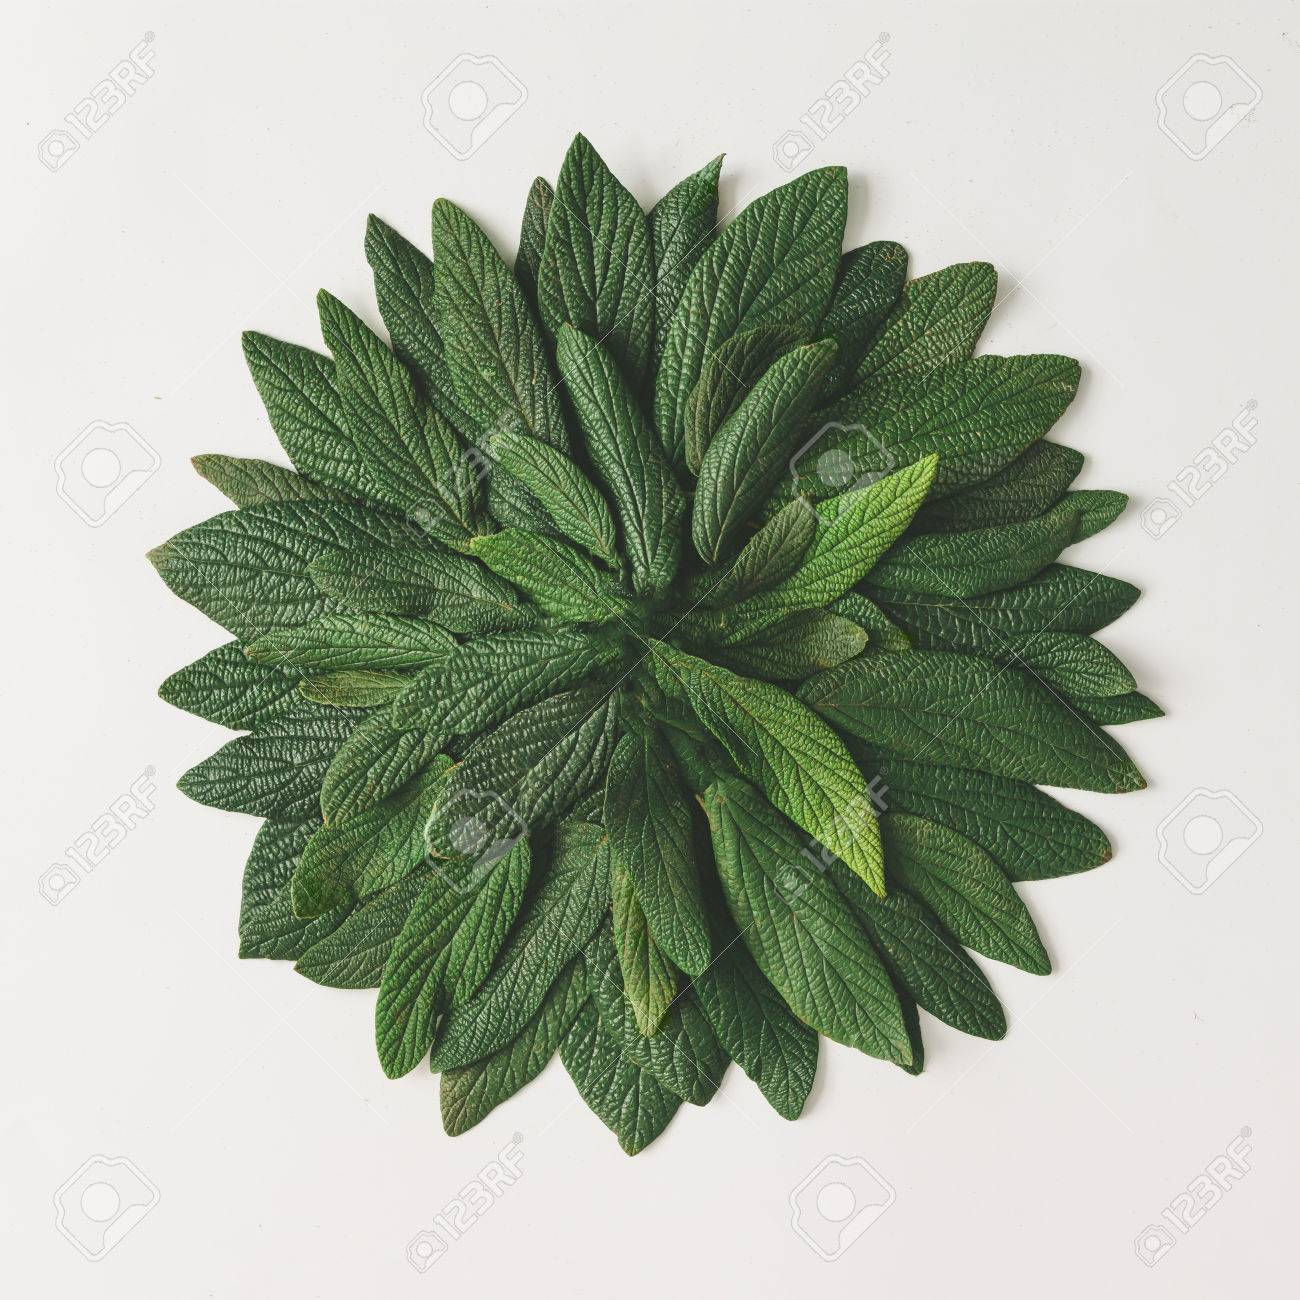 Creative minimal arrangement of green leaves. Nature concept. Flat lay. - 76154384